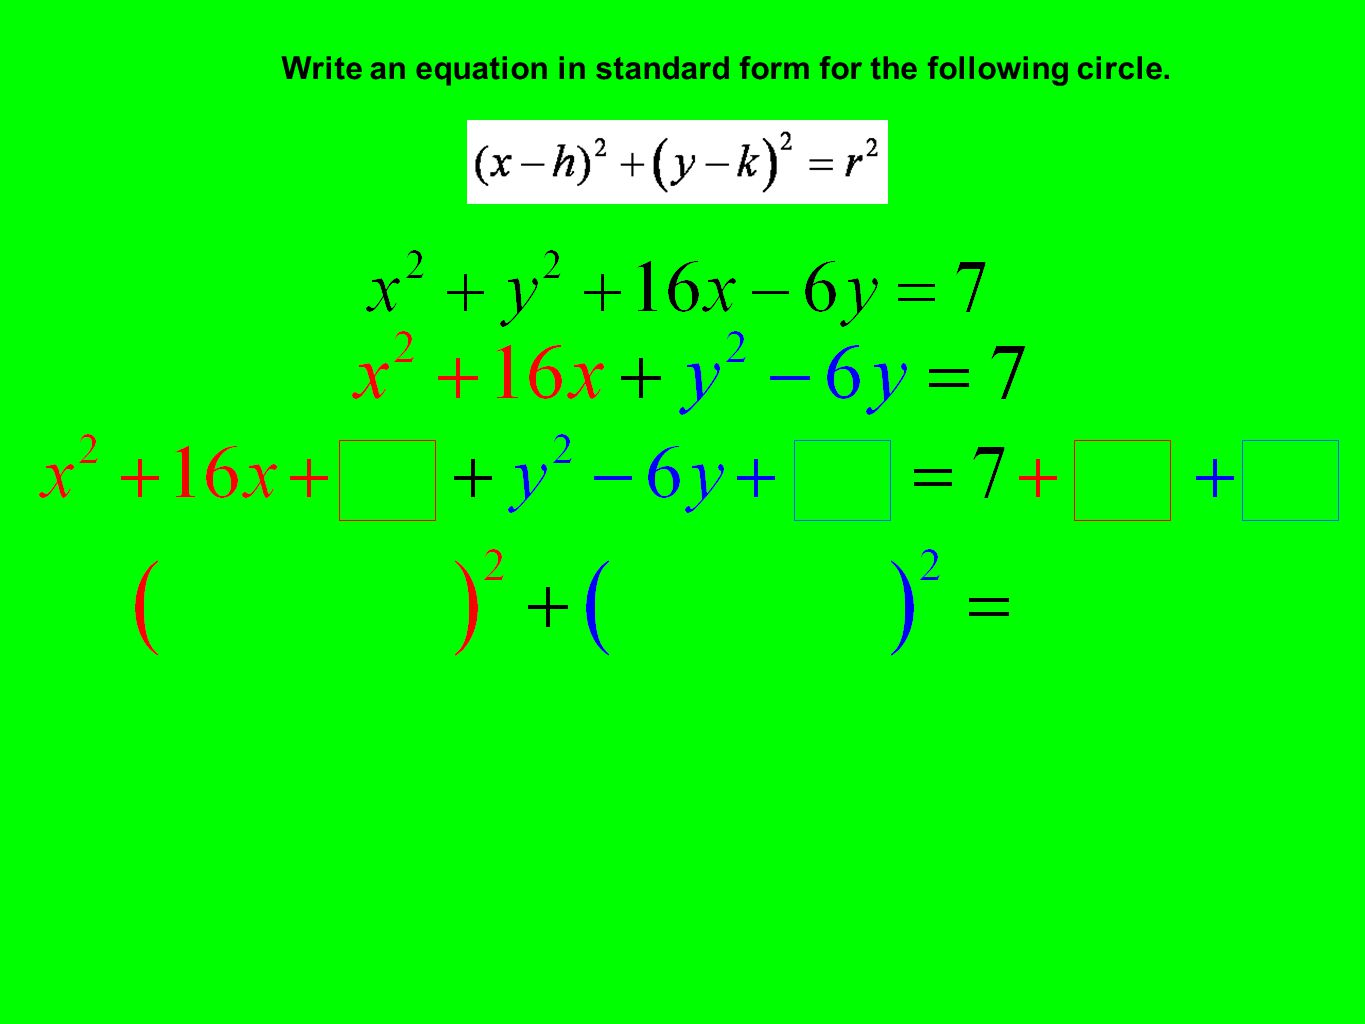 Write an equation in standard form for the following circle.